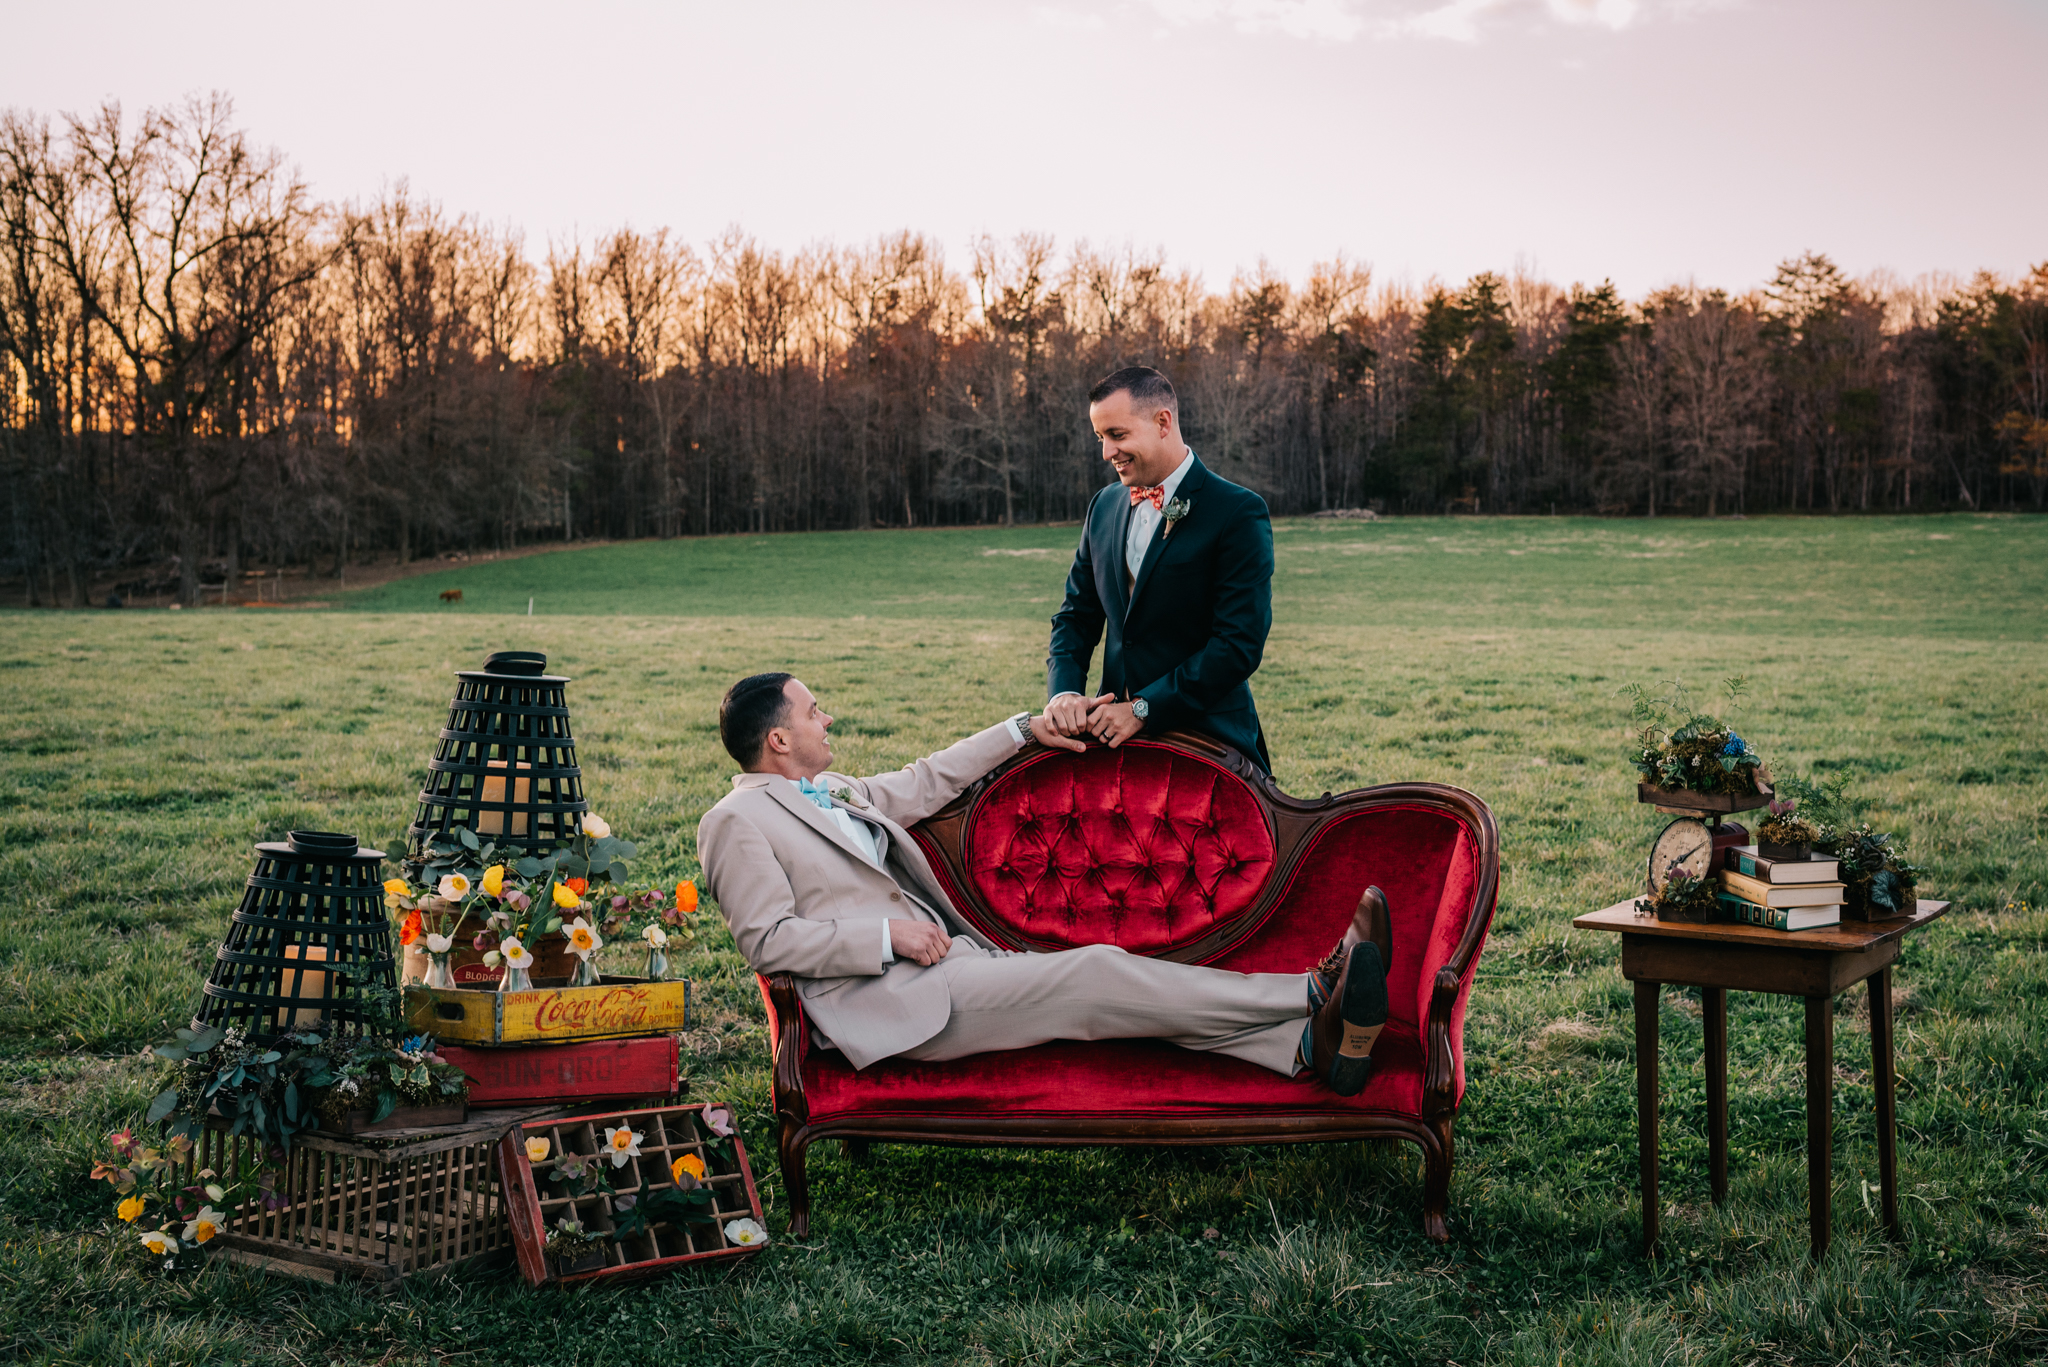 The grooms pose at the red couch with the flowers and rustic decor during sunset at the farm styled engagement session with Rose Trail Images at Windy Hill Farm near Raleigh, NC.